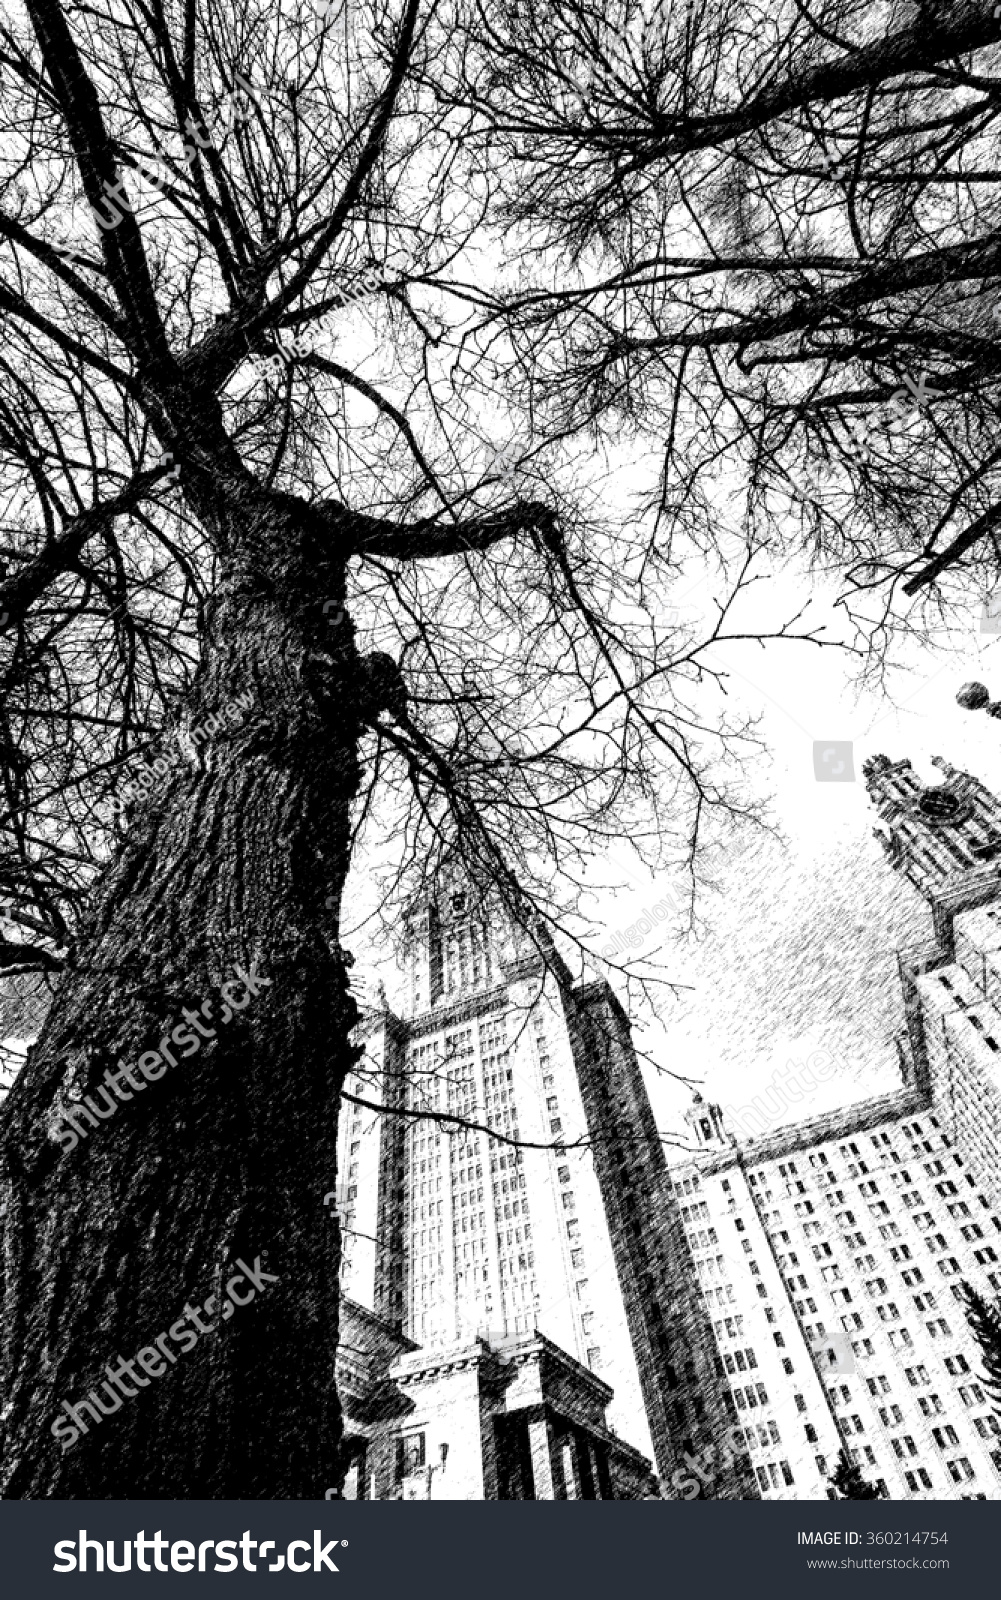 Graphic pencil sketch of wide angle view of tree branches near main building of moscow university